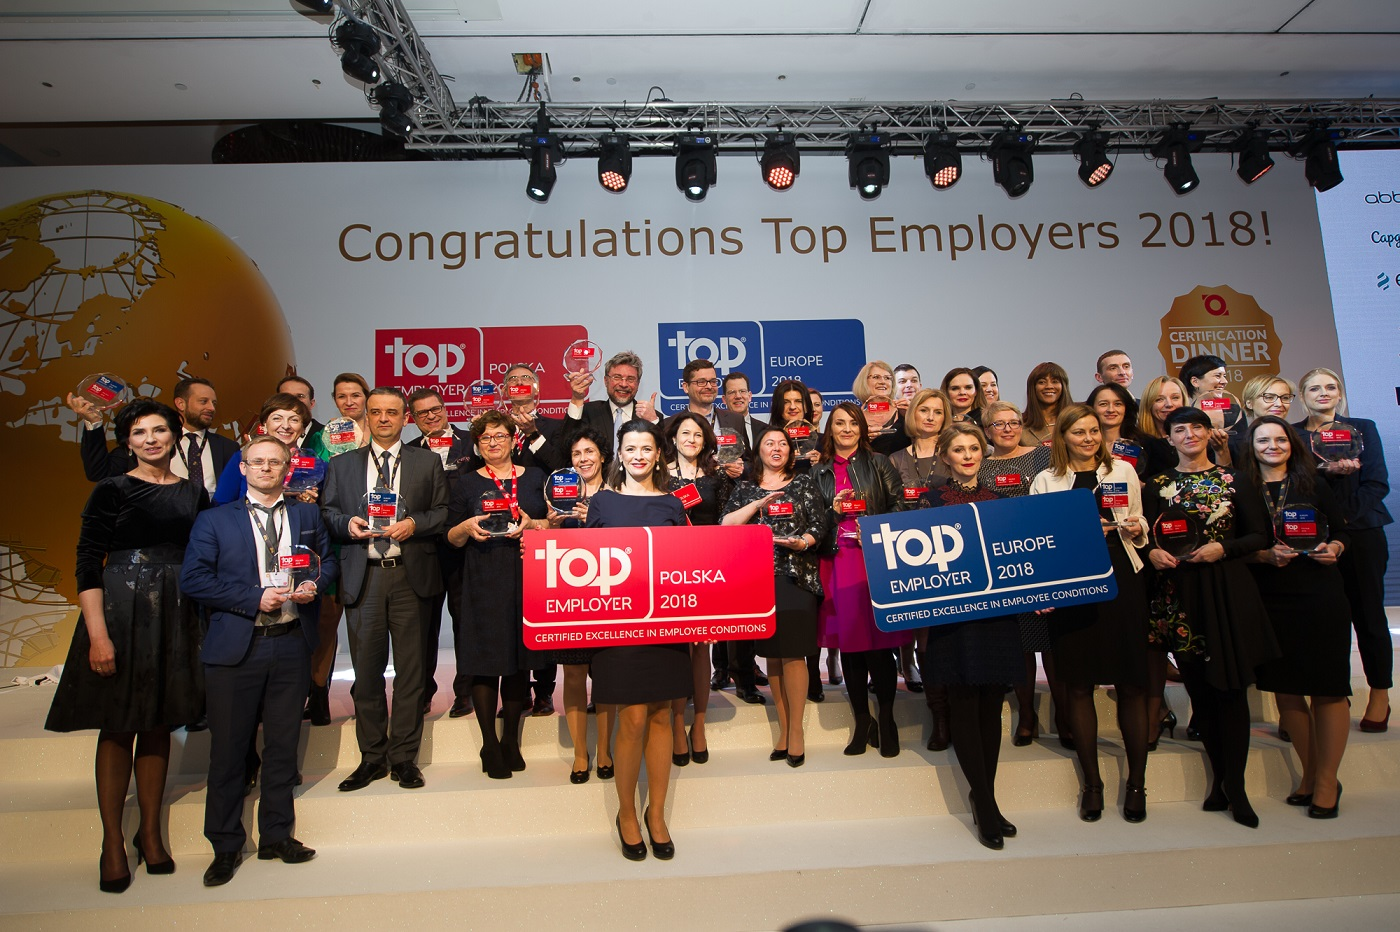 TOP EMPLOYERS POLSKA 2018